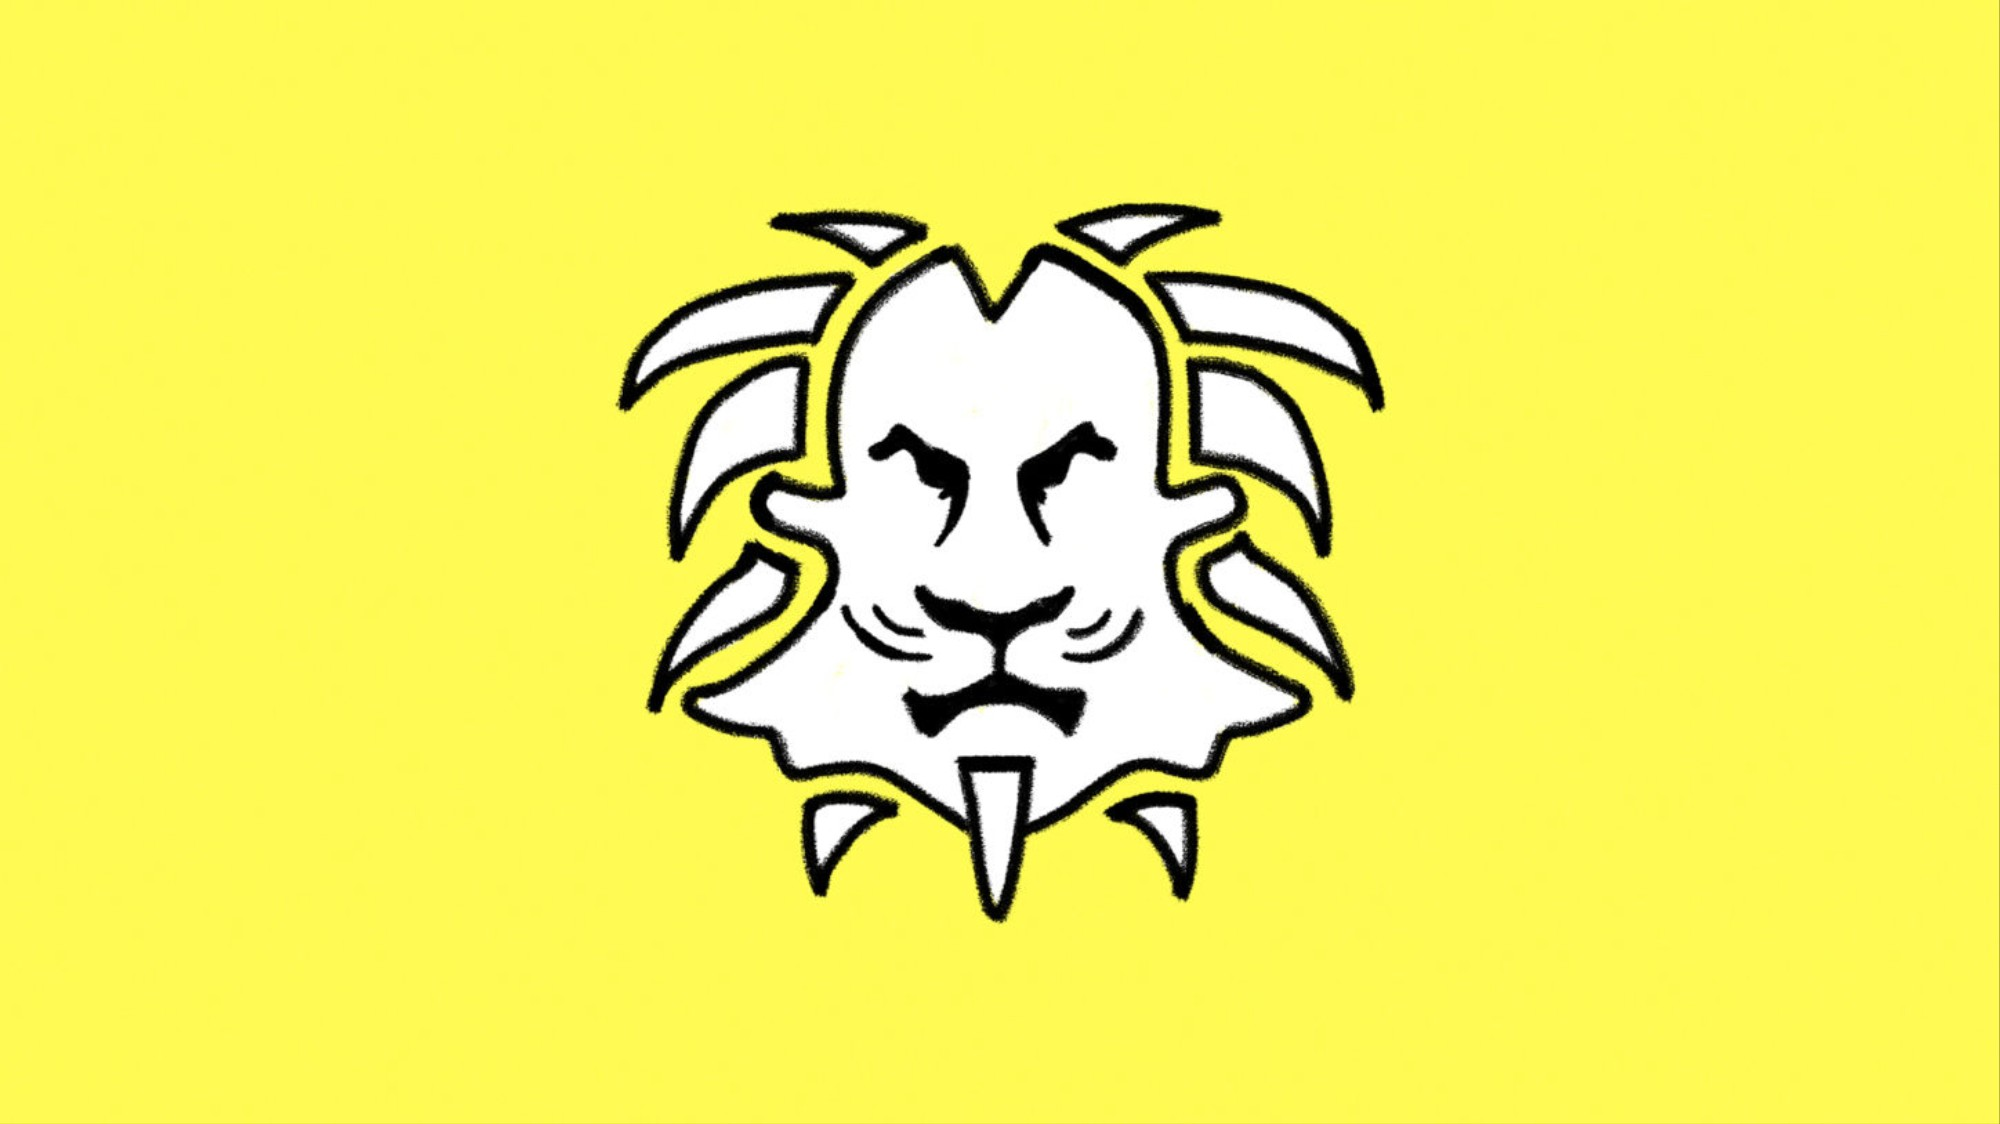 SnapLion icon from Snapchat